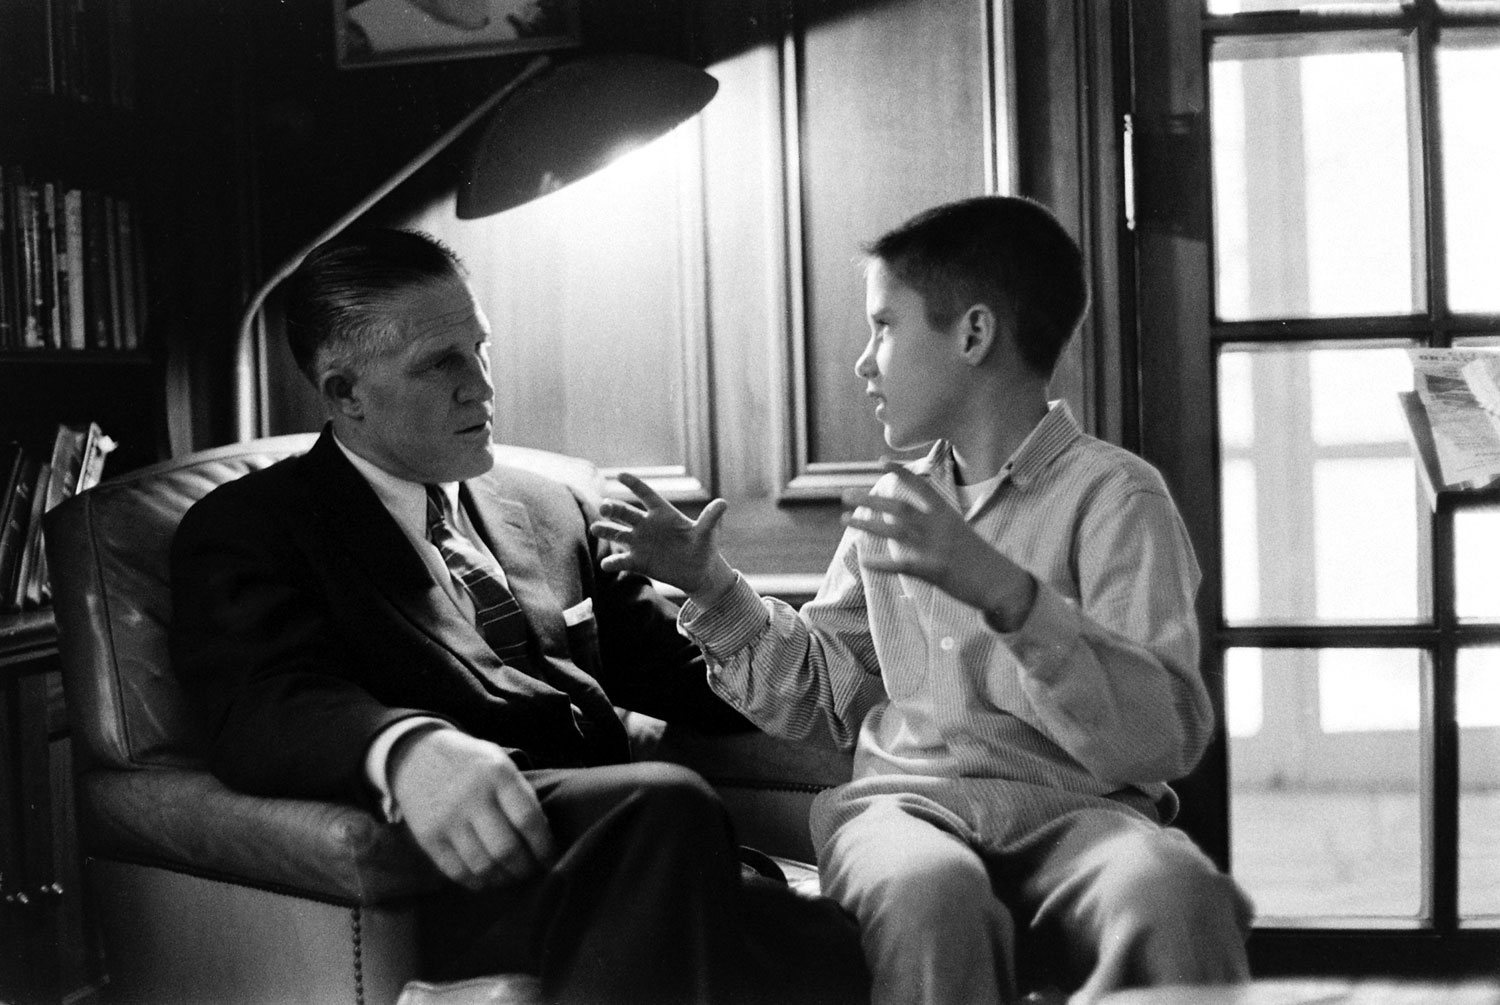 George Romney with his son, Mitt, 1958.